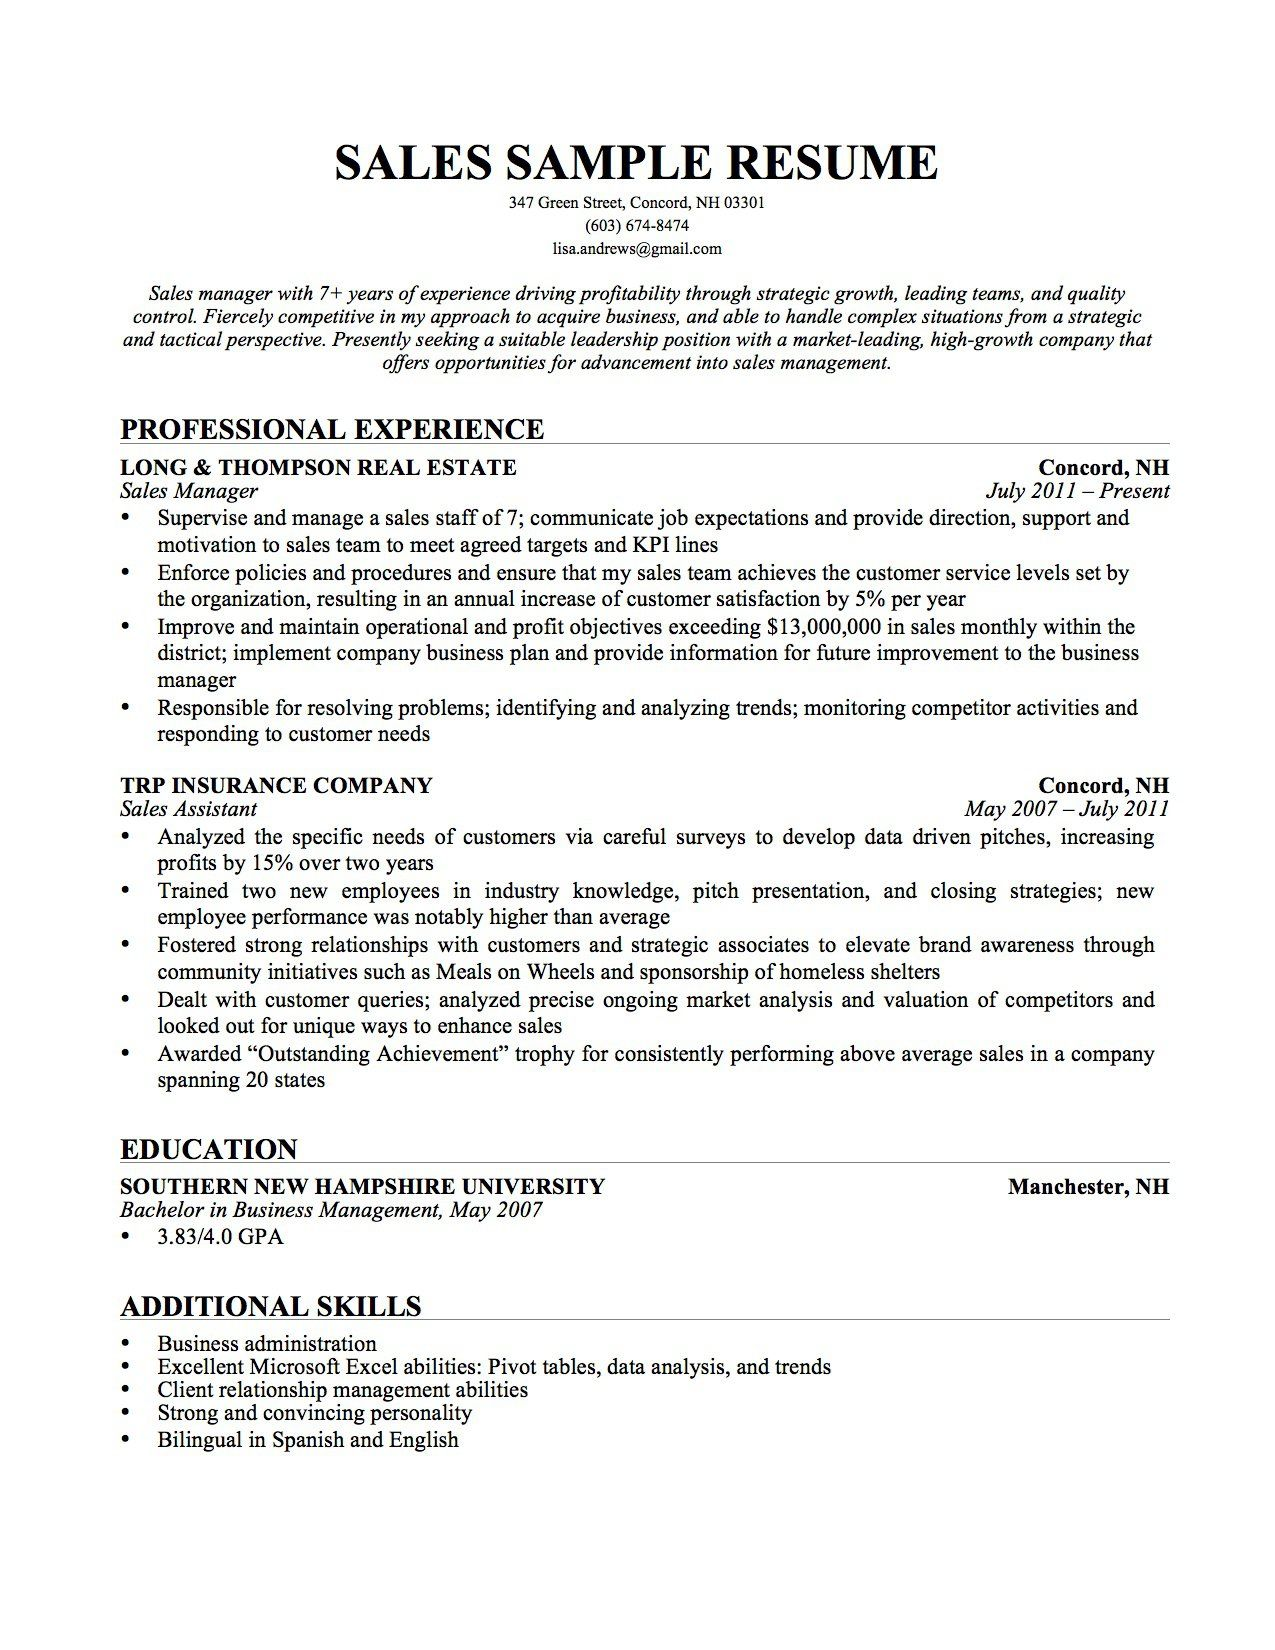 What To Put On A Resume For Skills Classy Admin Experience Resume Samples System Administrator Examples Review